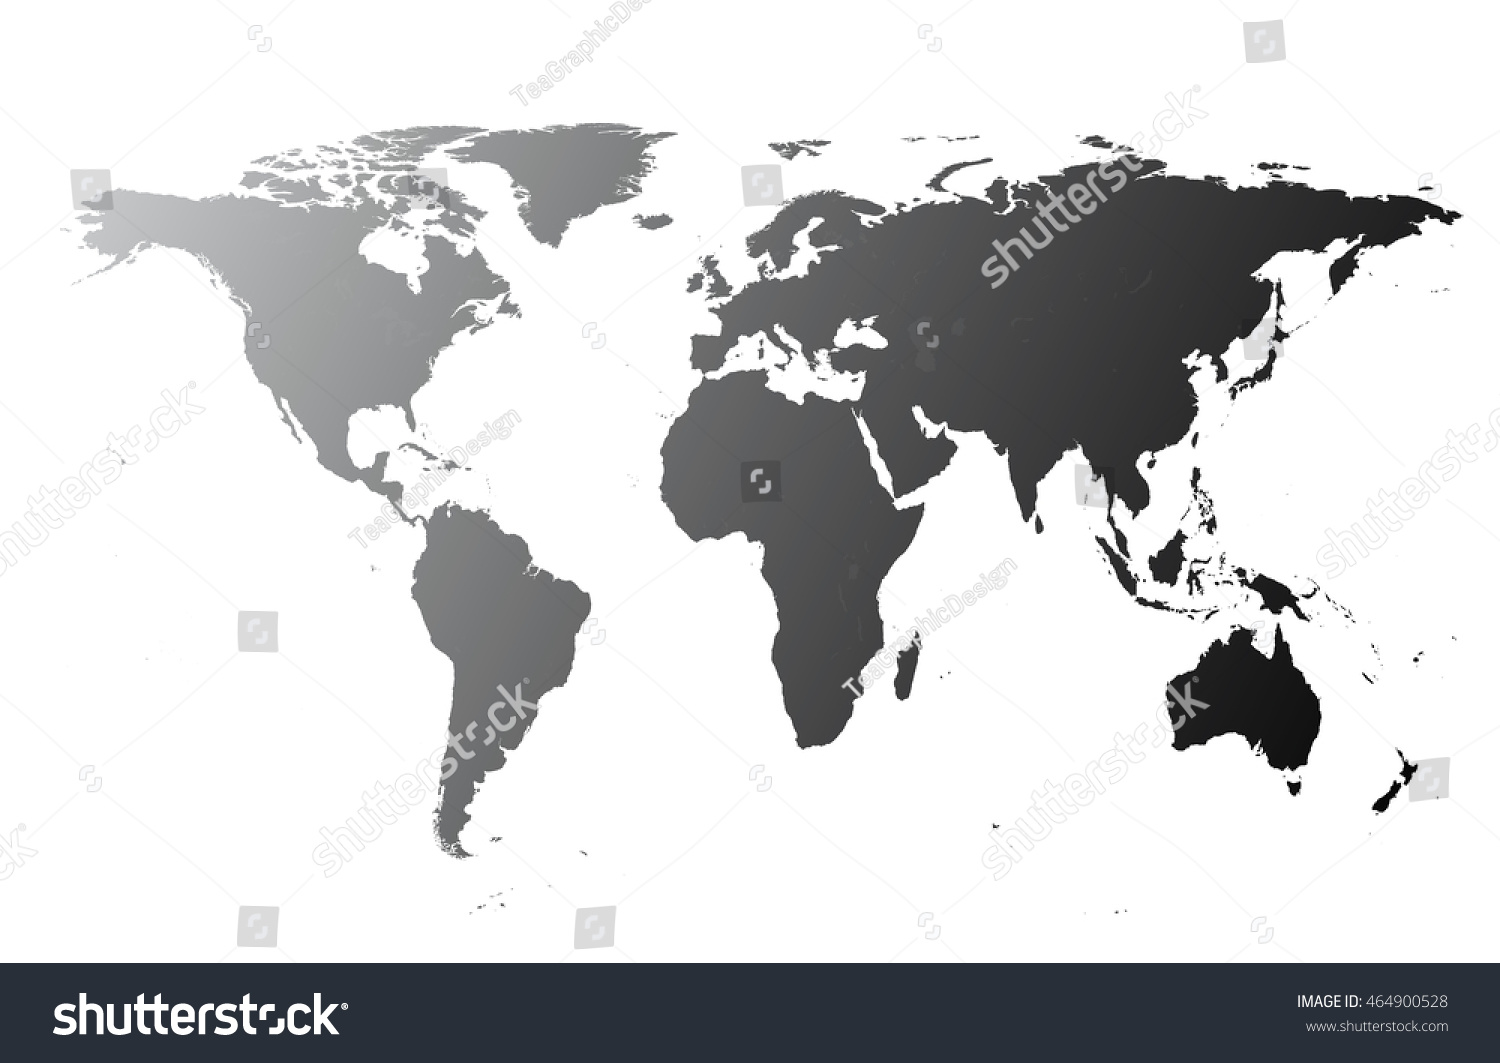 World map without borders vector illustration vectores en stock world map without borders vector illustration vectores en stock 464900528 shutterstock gumiabroncs Choice Image